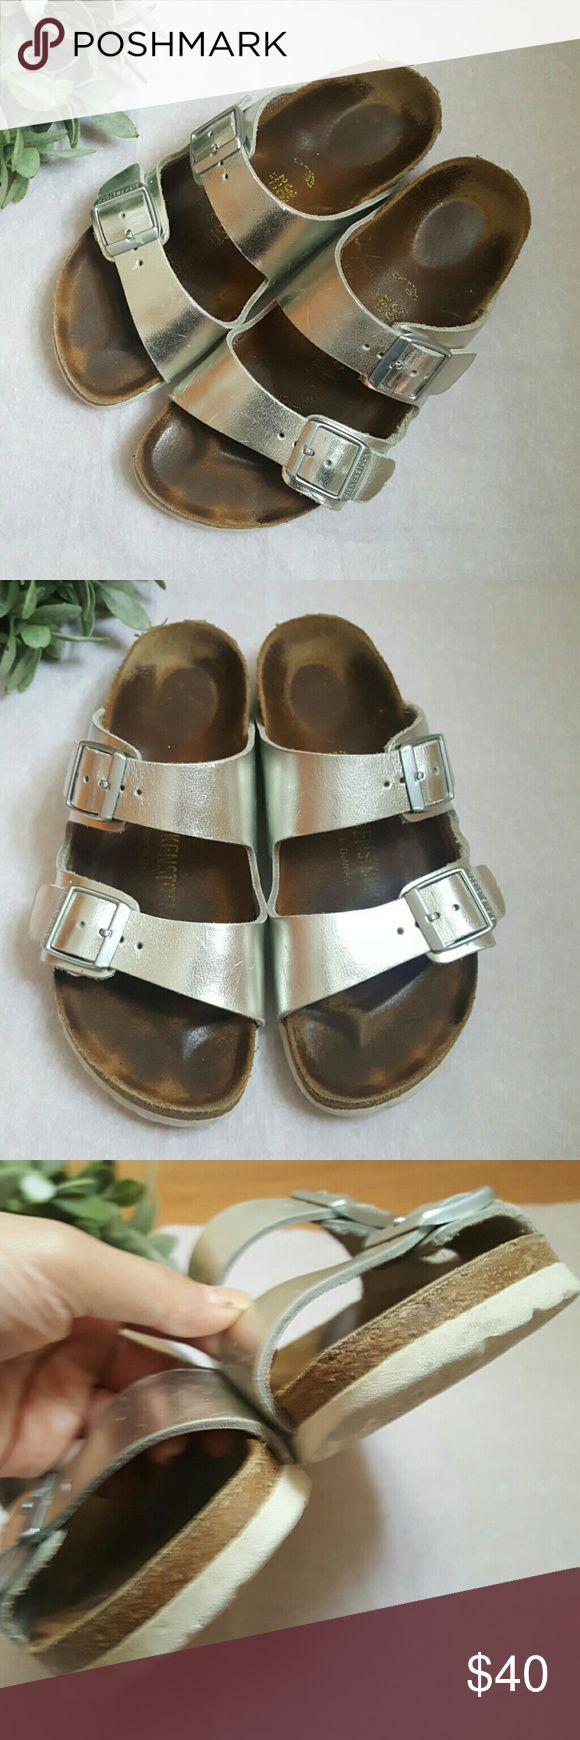 Birkenstock Silver Leather Sandals As pictured. Leather has some creasing and scratches. Overall in great pre-loved condition. These are a size 36 which converts to a US 5-5.5 Birkenstock Shoes Sandals